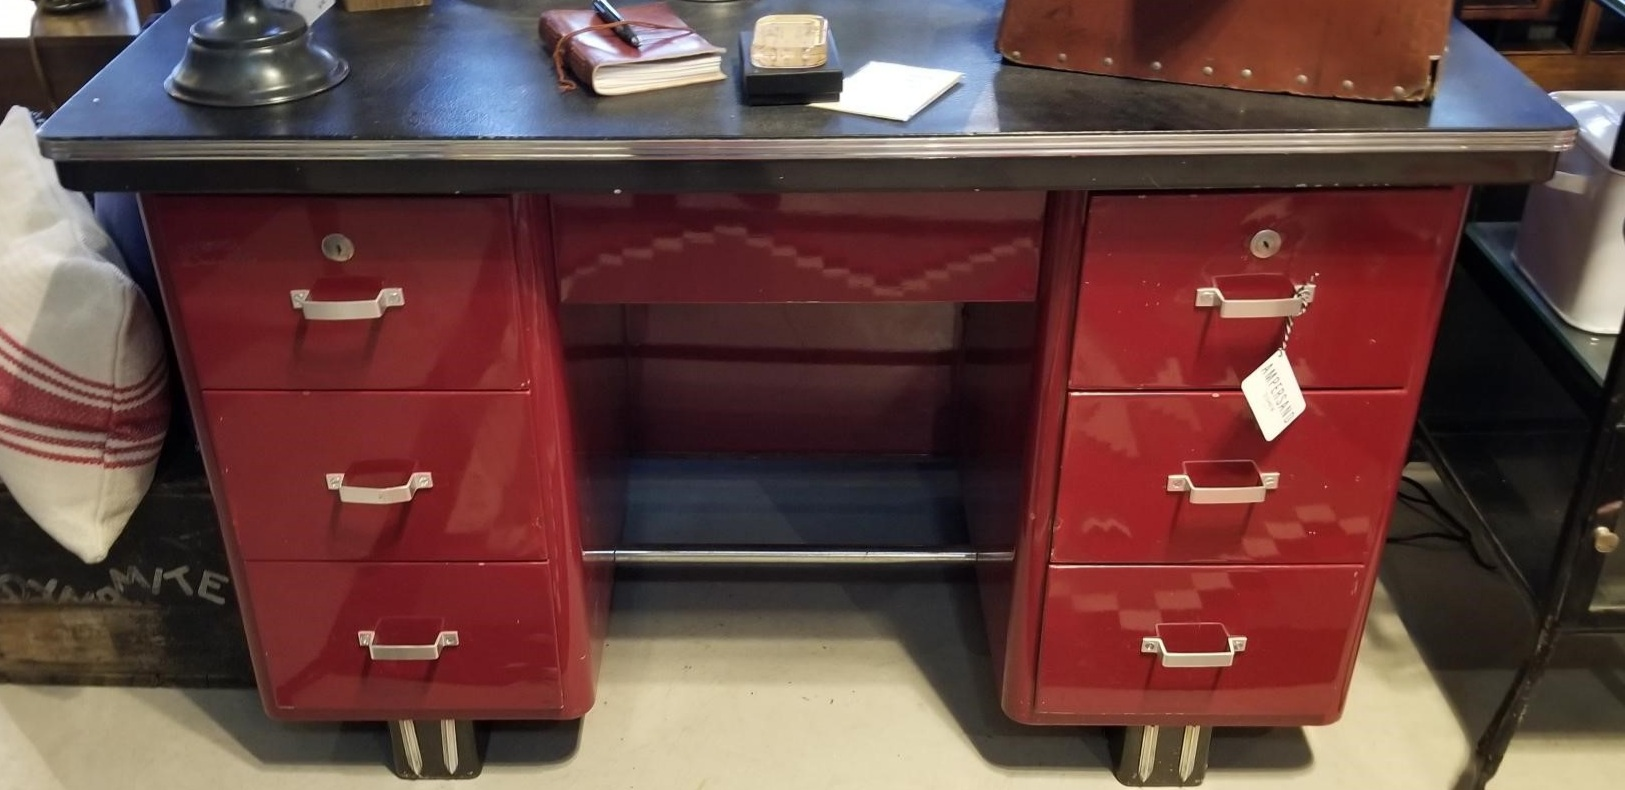 This Red Metal Desk is EVERYTHING! We were hell-bent on finding a desk at Round Top and saw only 2. But this one completely exceeded our wildest dreams. It's so gas-station-chic, so very Art Deco, so deliciously masculine, so intensely RED, and SO. INCREDIBLY.  HEAVY.  If I weren't in the business of selling things, I would build a house around this desk. NO LIE.